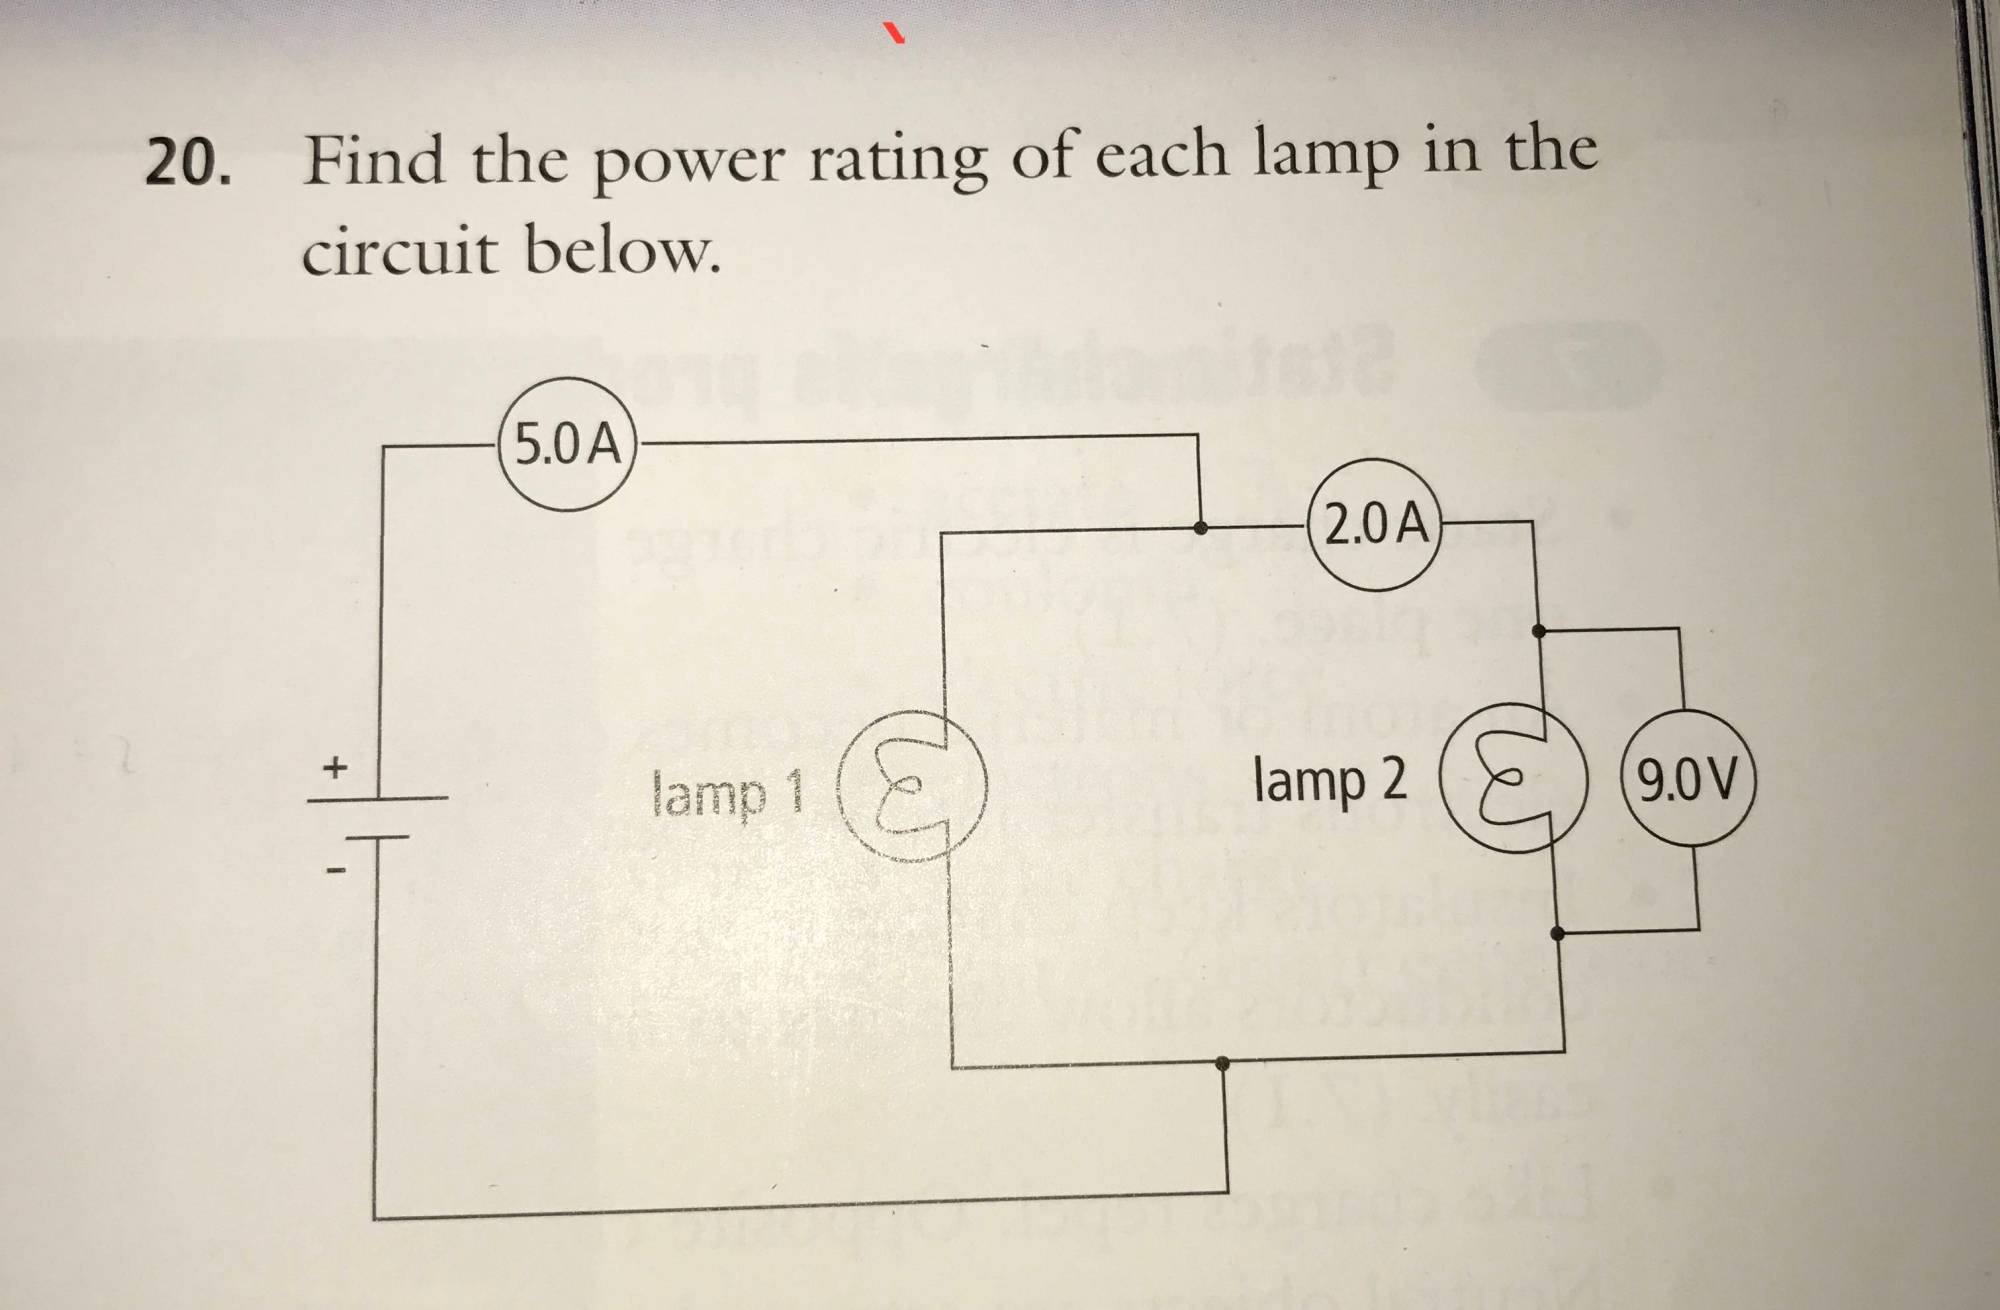 hight resolution of how do i find the power rating of the following circuit diagram electrical engineering stack exchange